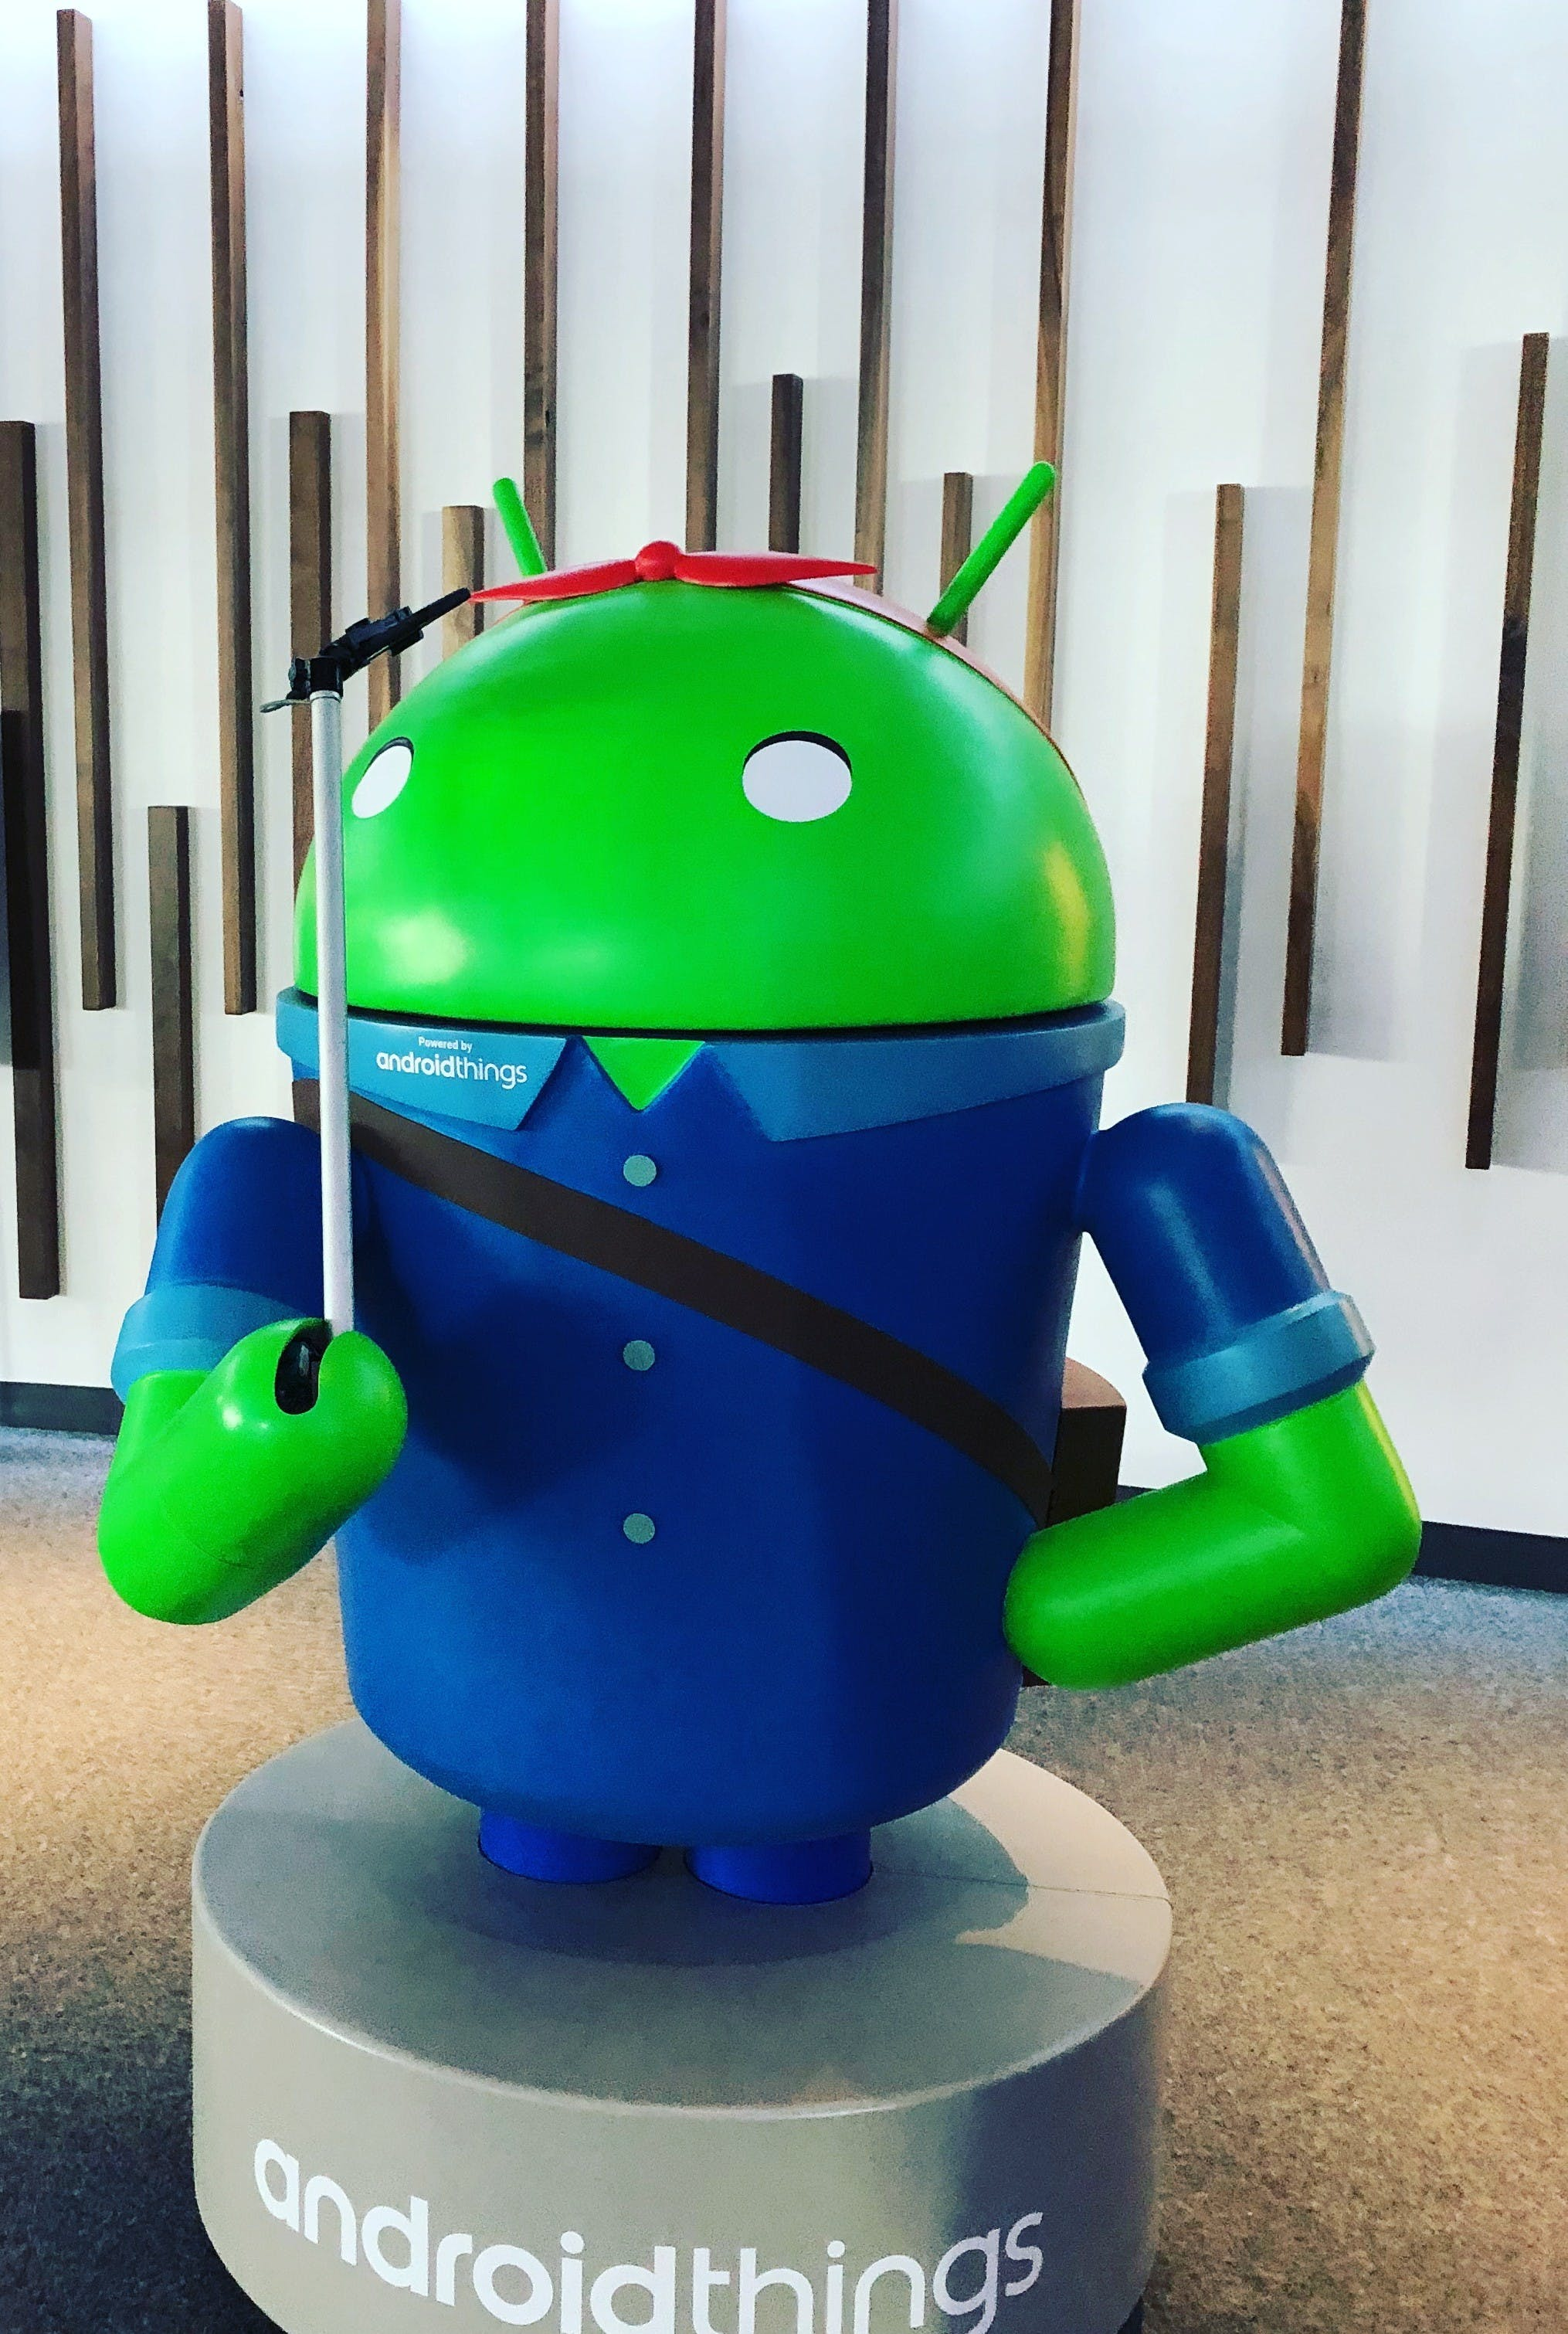 Rosie the Android v2